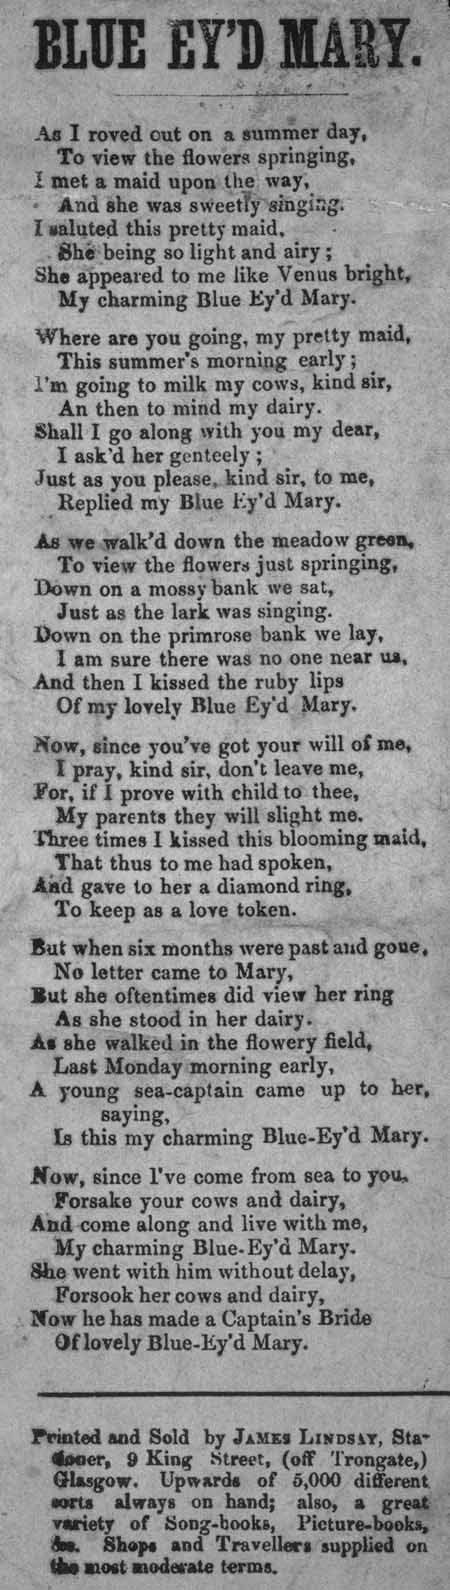 Broadside ballad entitled 'Blue Ey'd Mary'